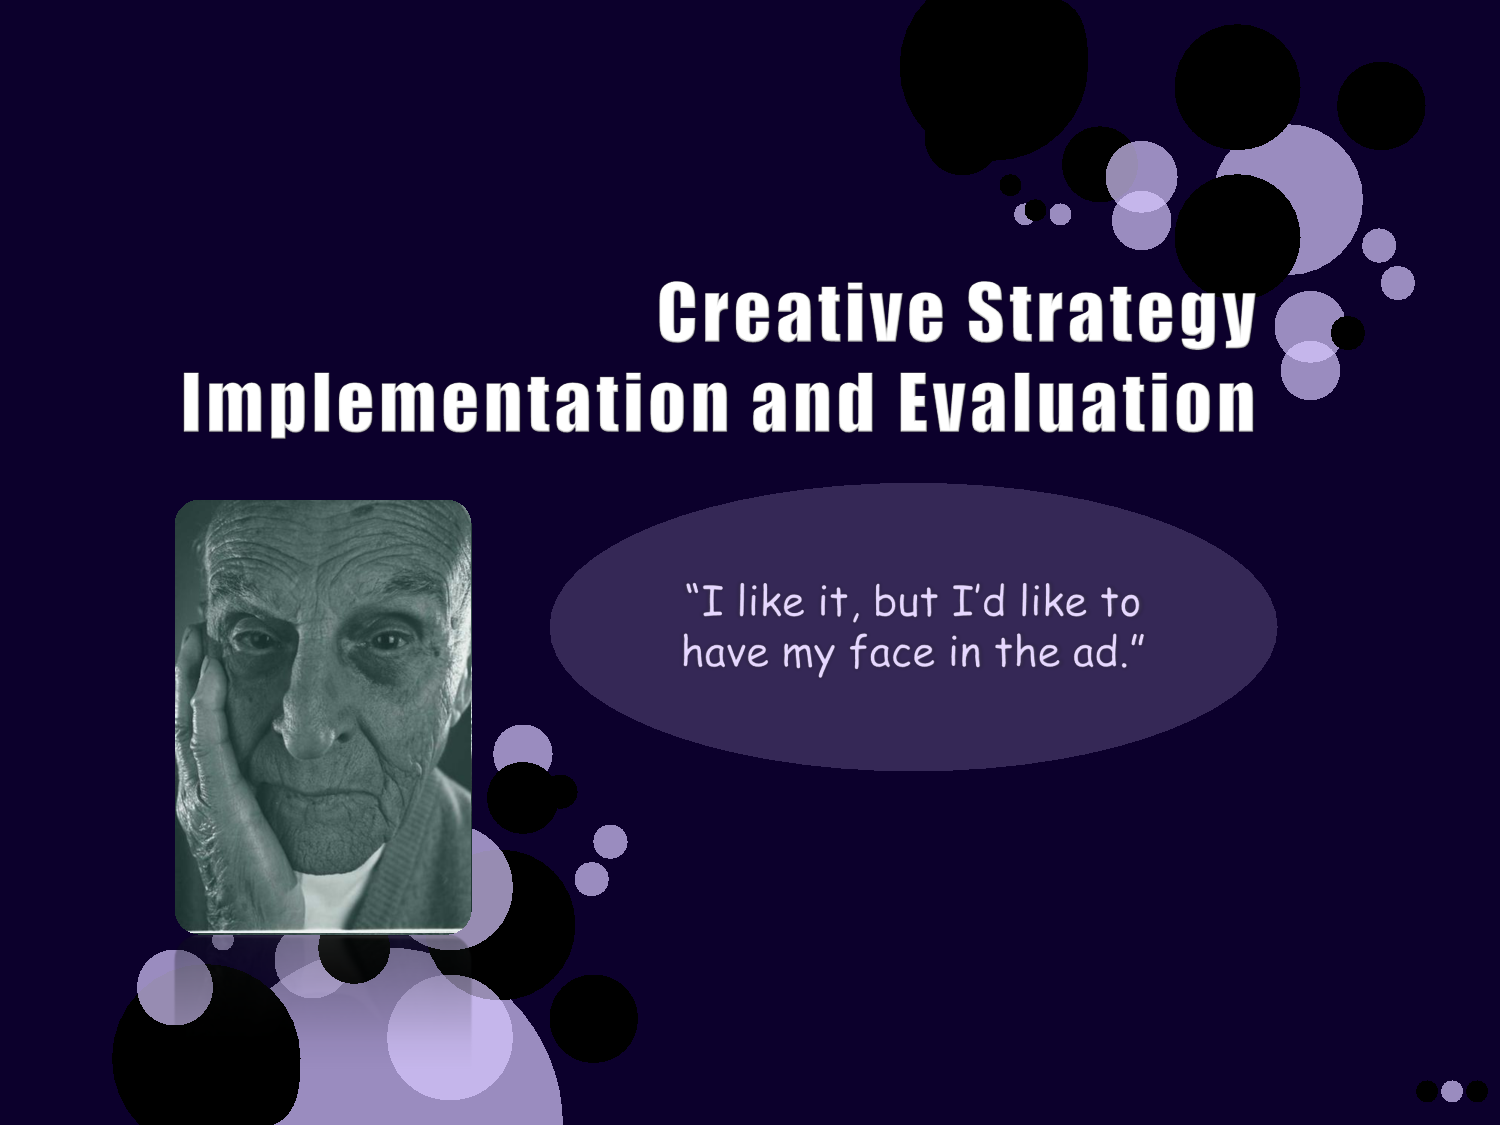 Lecture on Creative Strategy Implementation and Evaluation